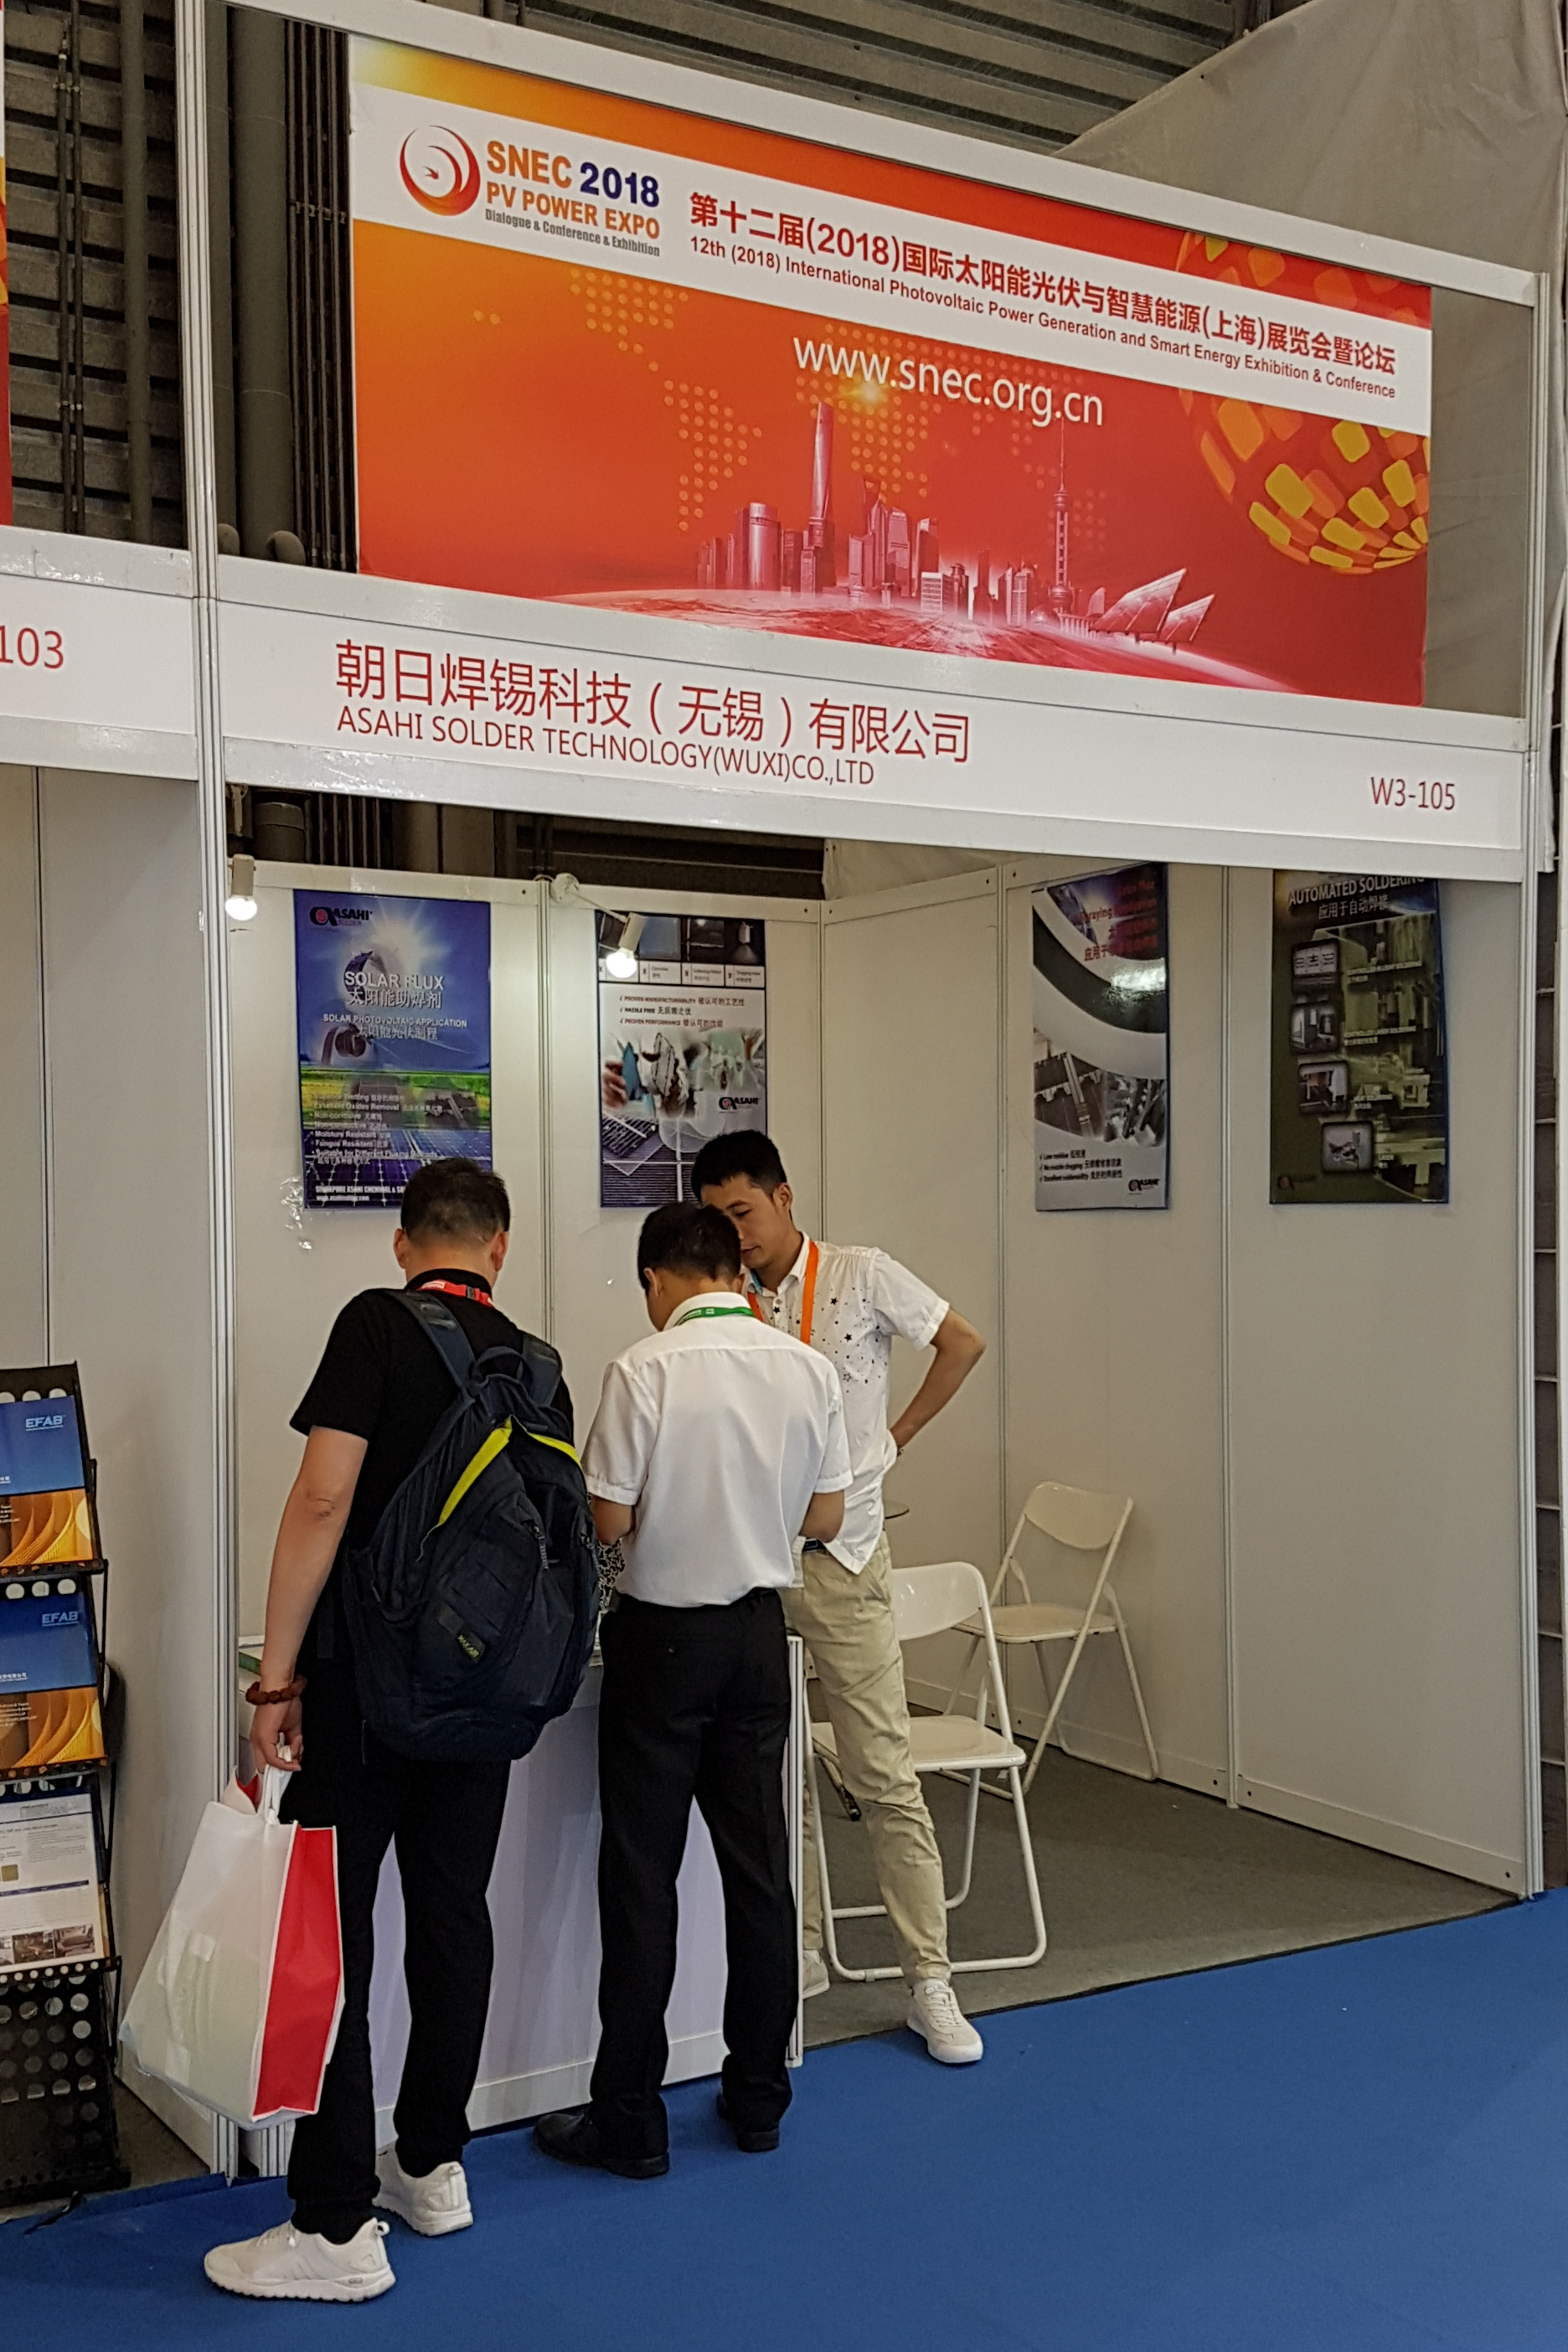 International Photovoltaic Power Generation and Smart Energy Conference & Exhibition (SNEC)